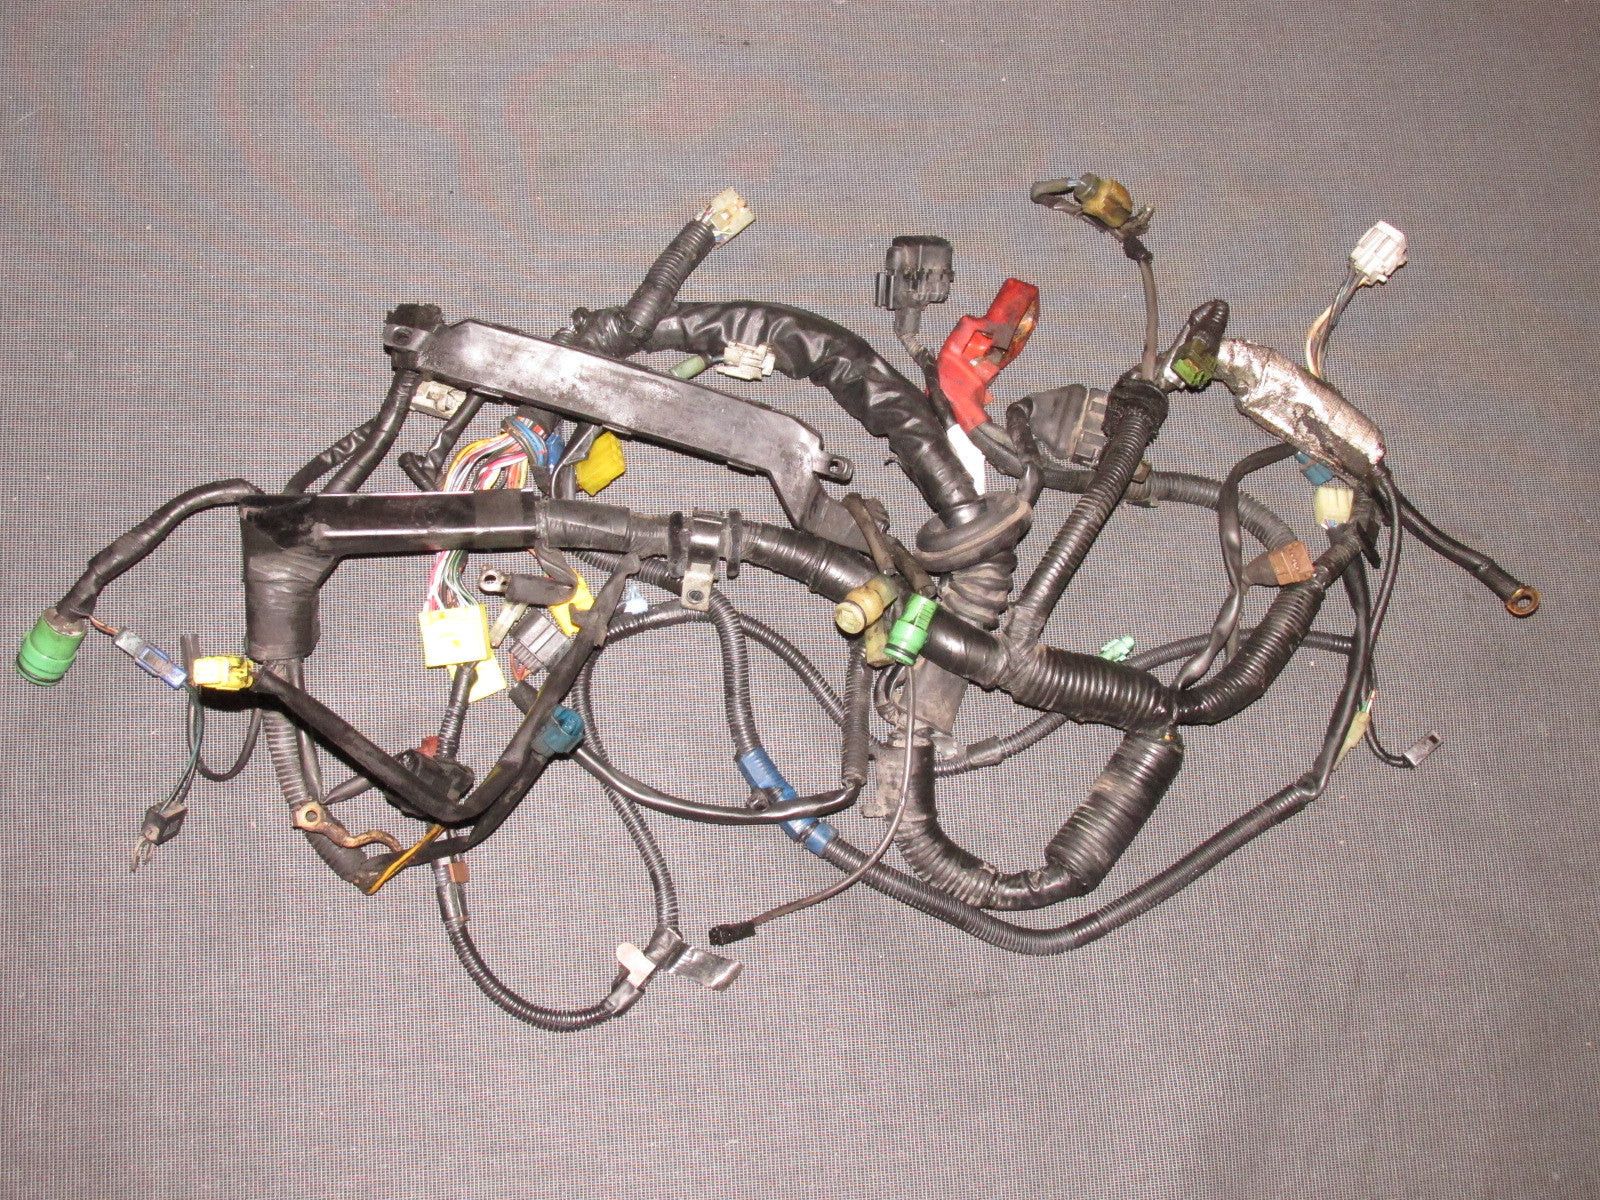 87 300zx Wiring Harness Diagram Library Toyota Supra 88 89 Mr2 Oem 4age Engine M T Radio